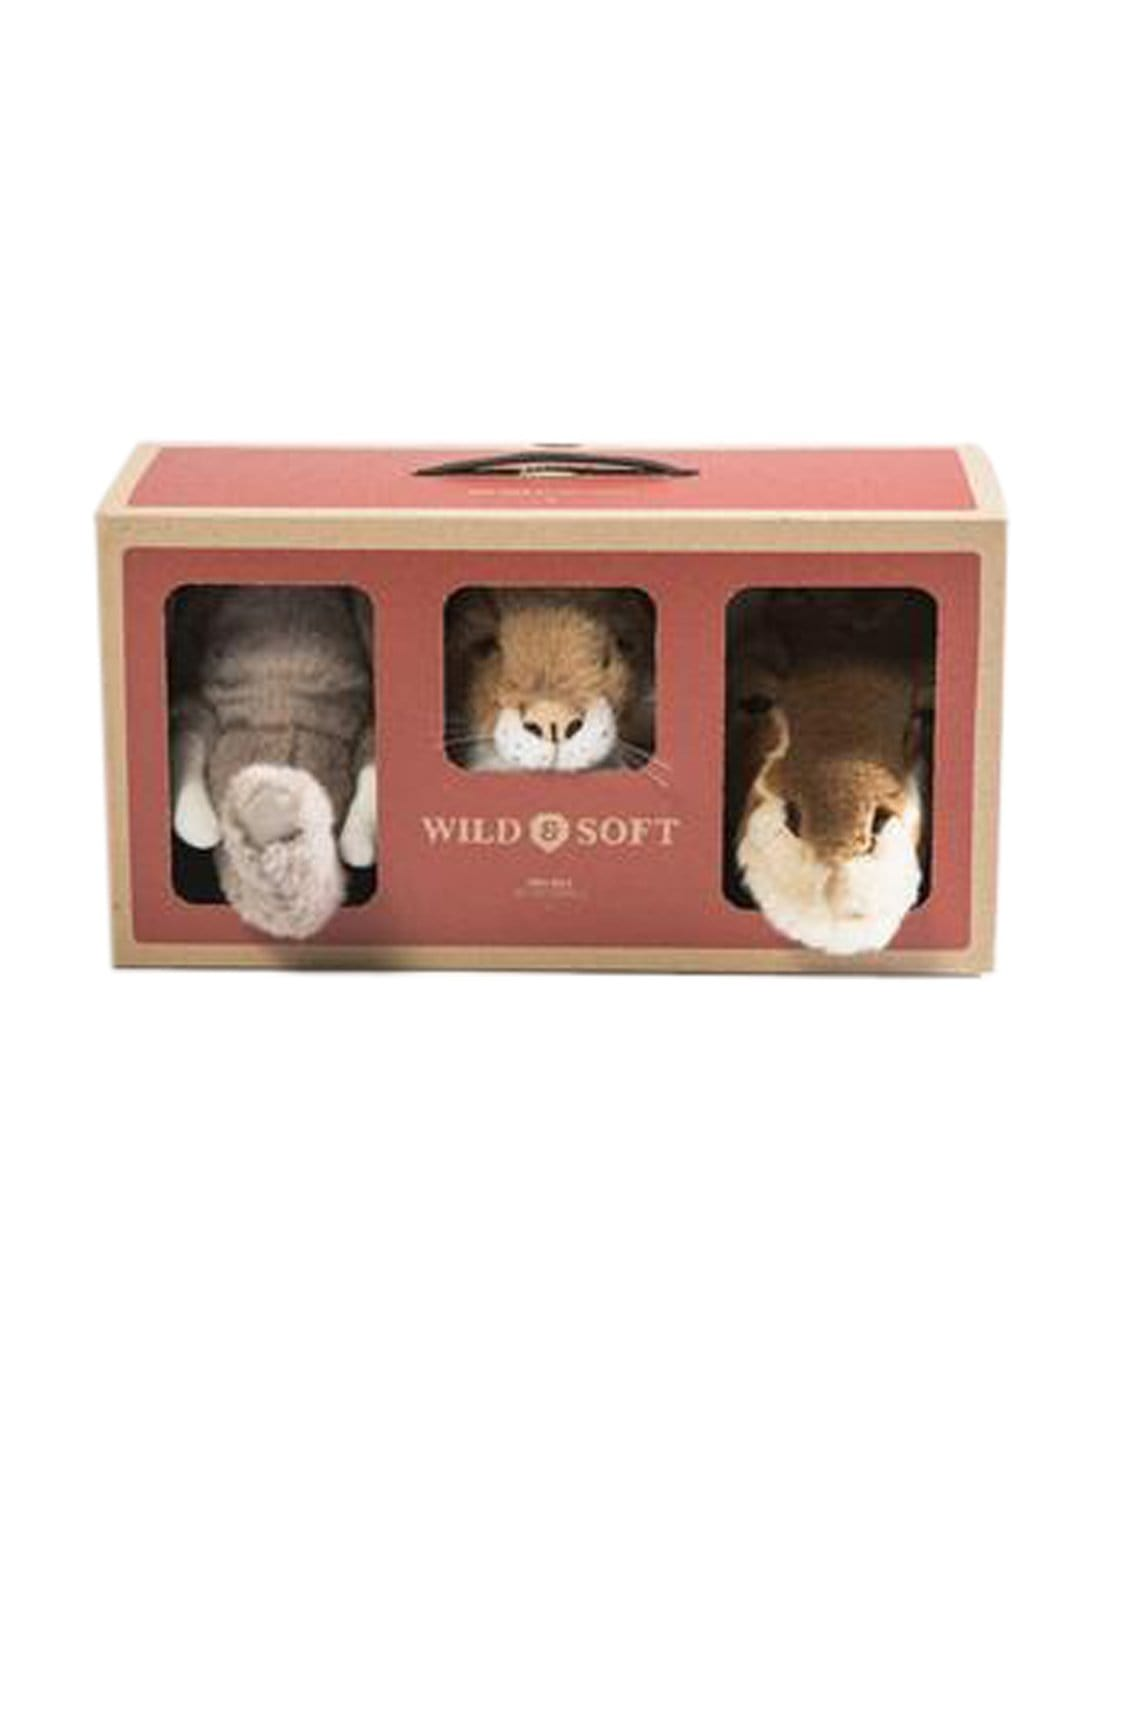 Wild and Soft Safari Box, Mini Elephant, Giraffe & Lion (PRE-ORDER JAN)